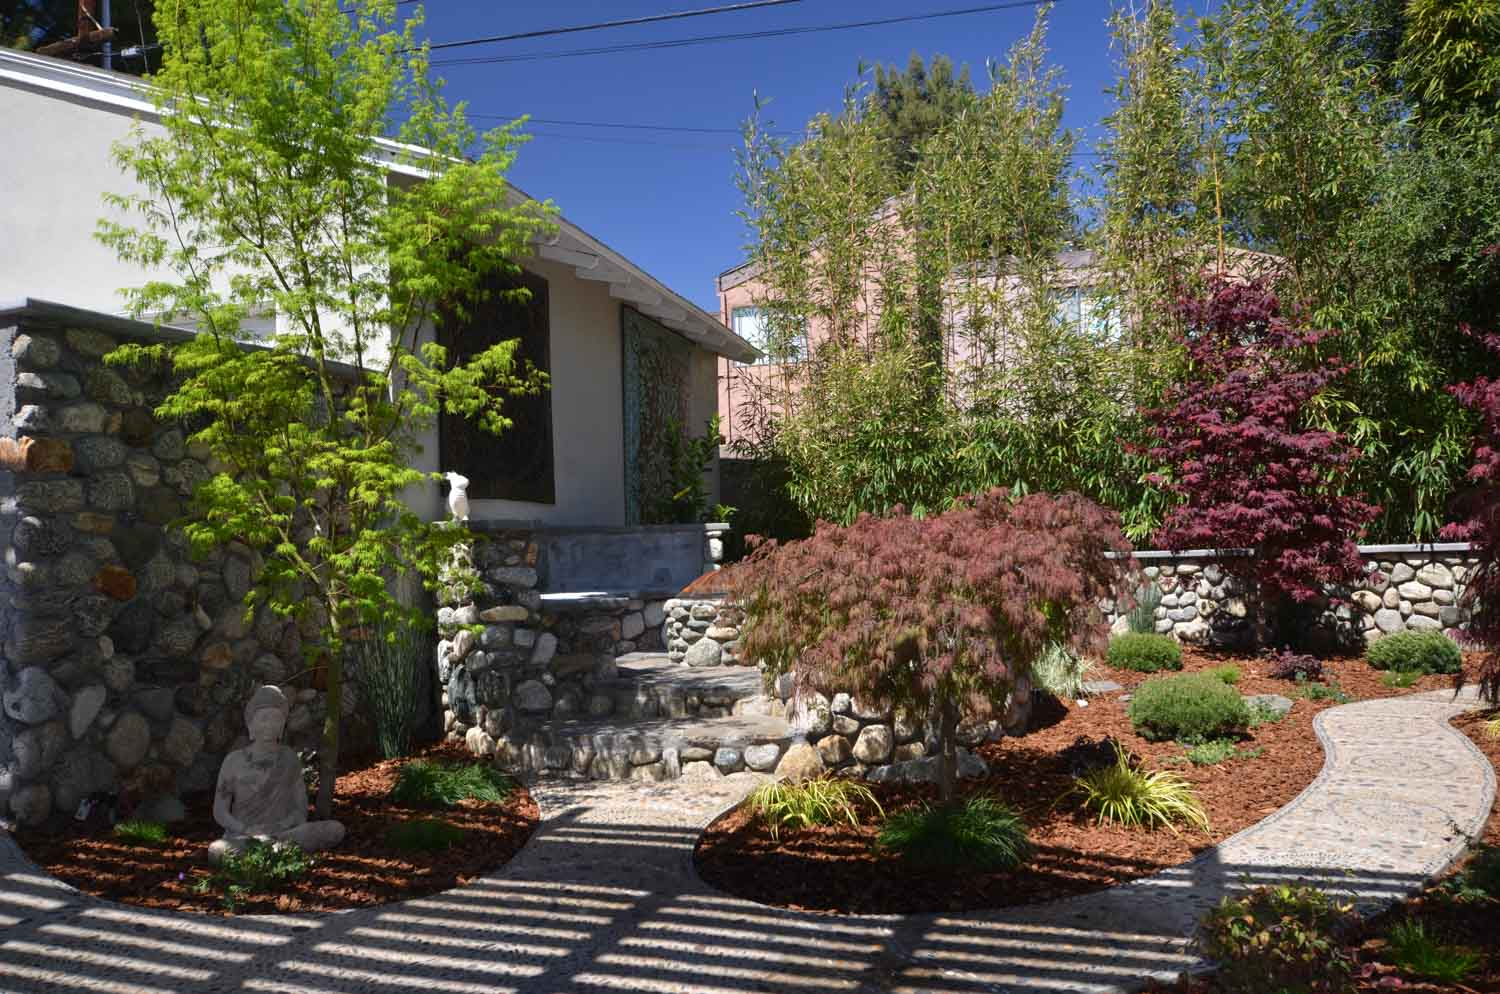 Landscape design with Japanese maples